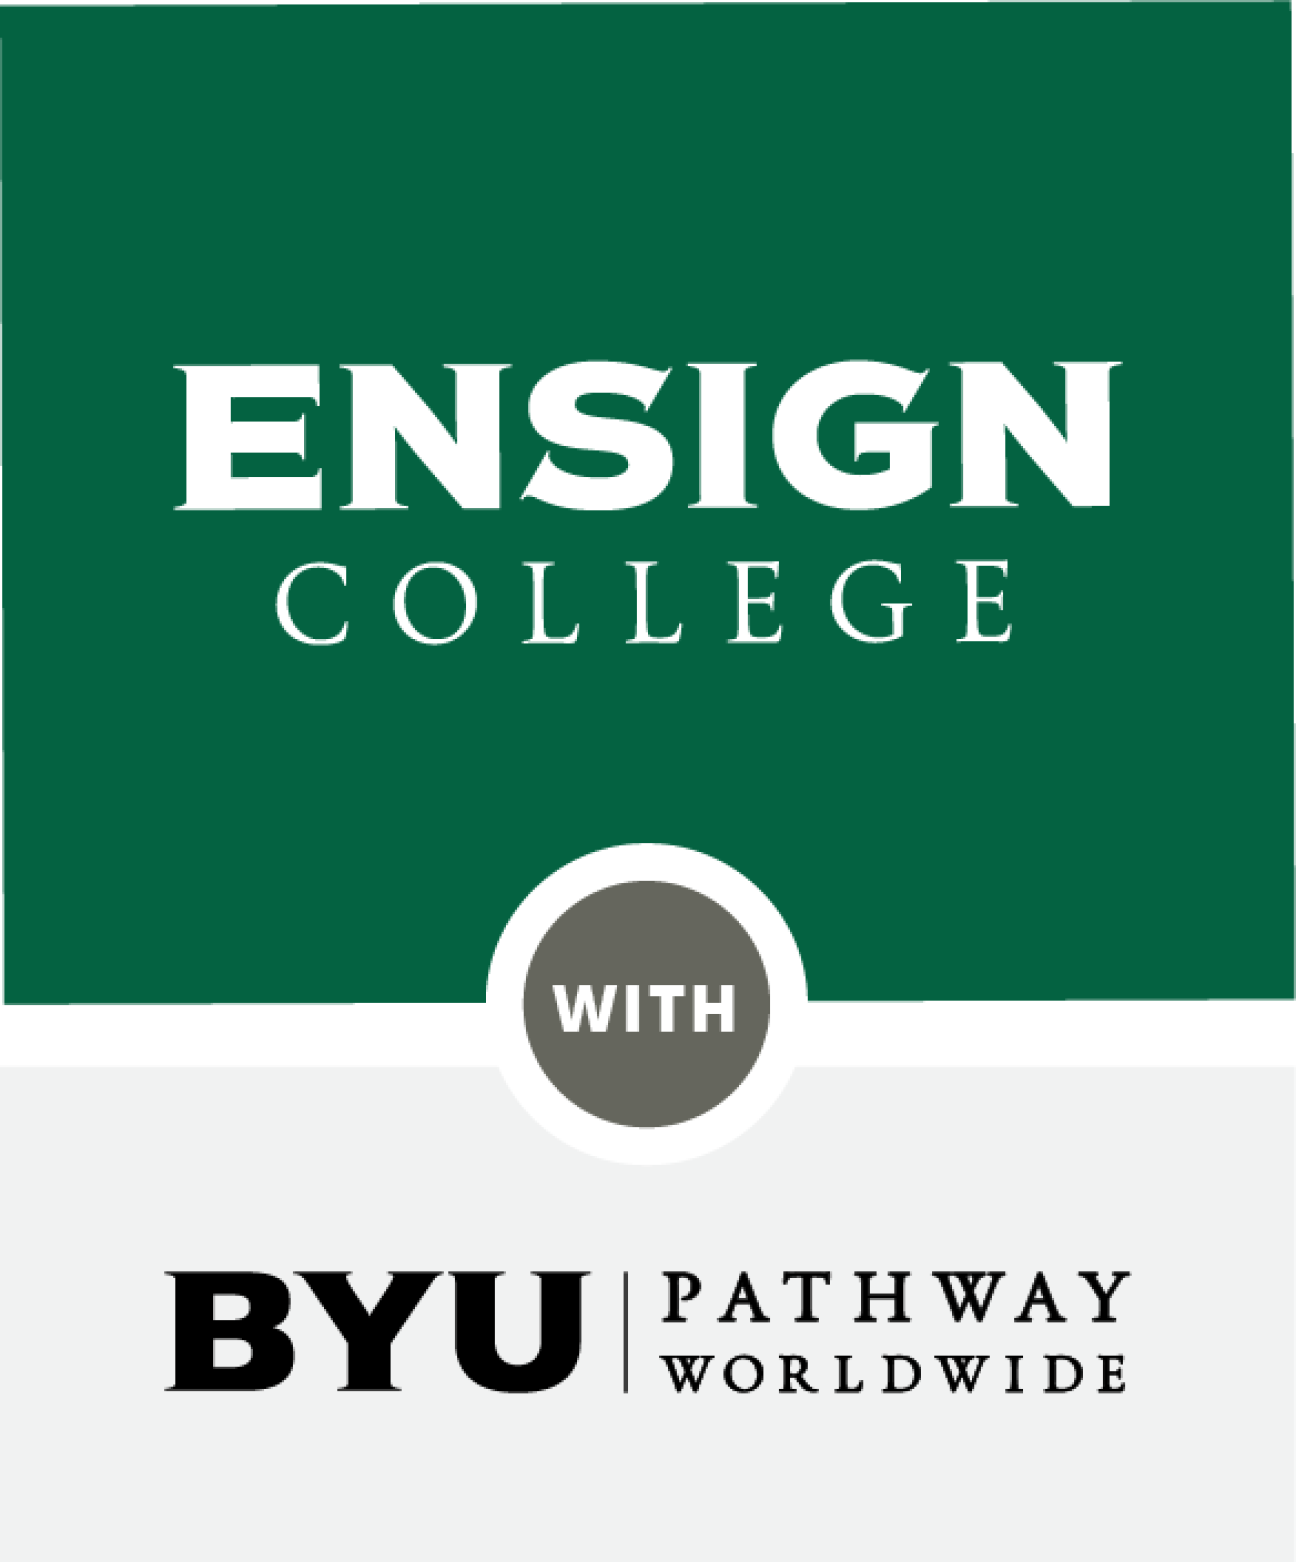 Ensign College + BYU-Pathway